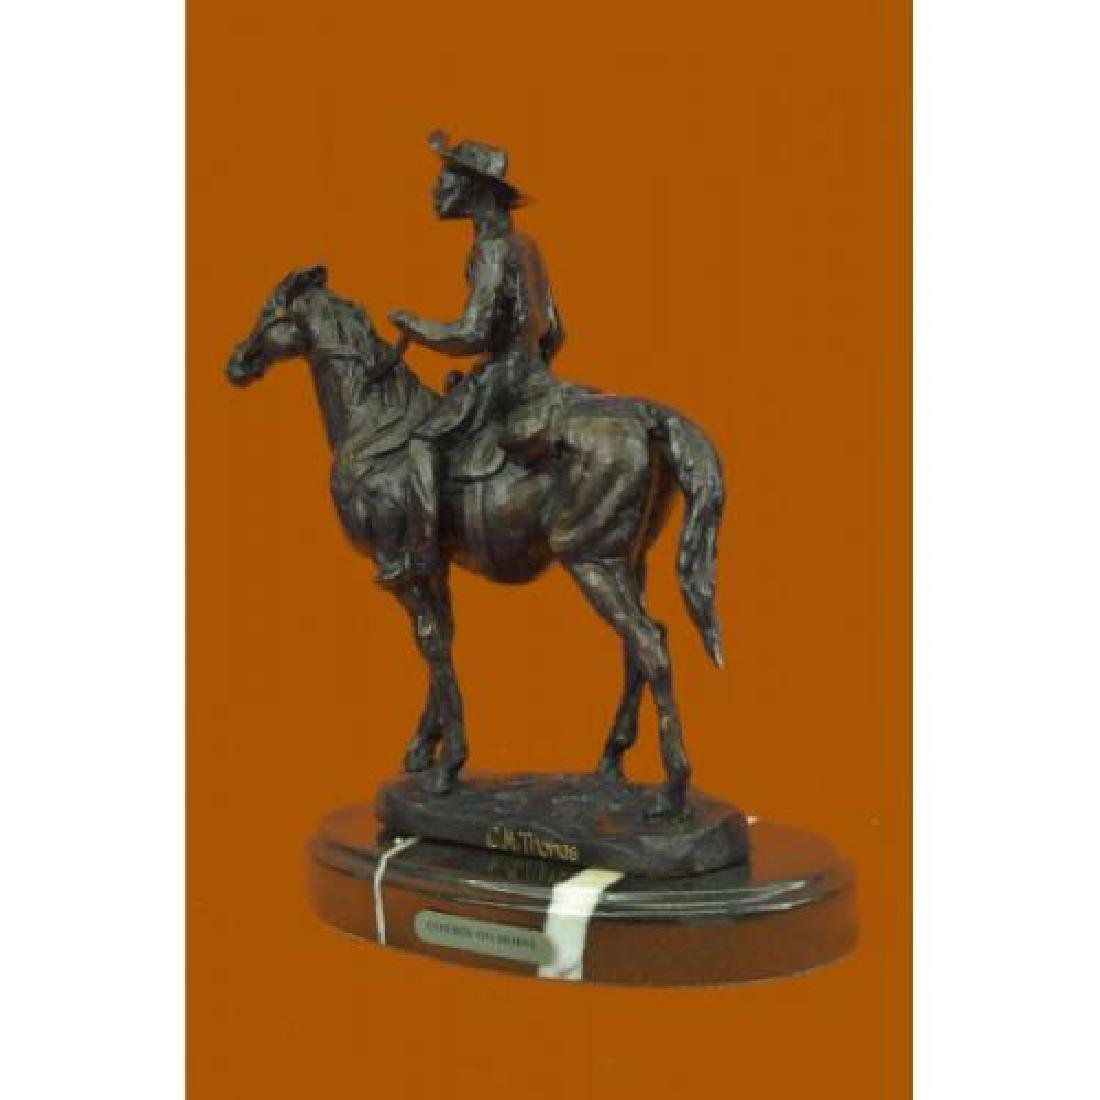 Rogers Bronze Statue on Marble Base Sculpture - 4